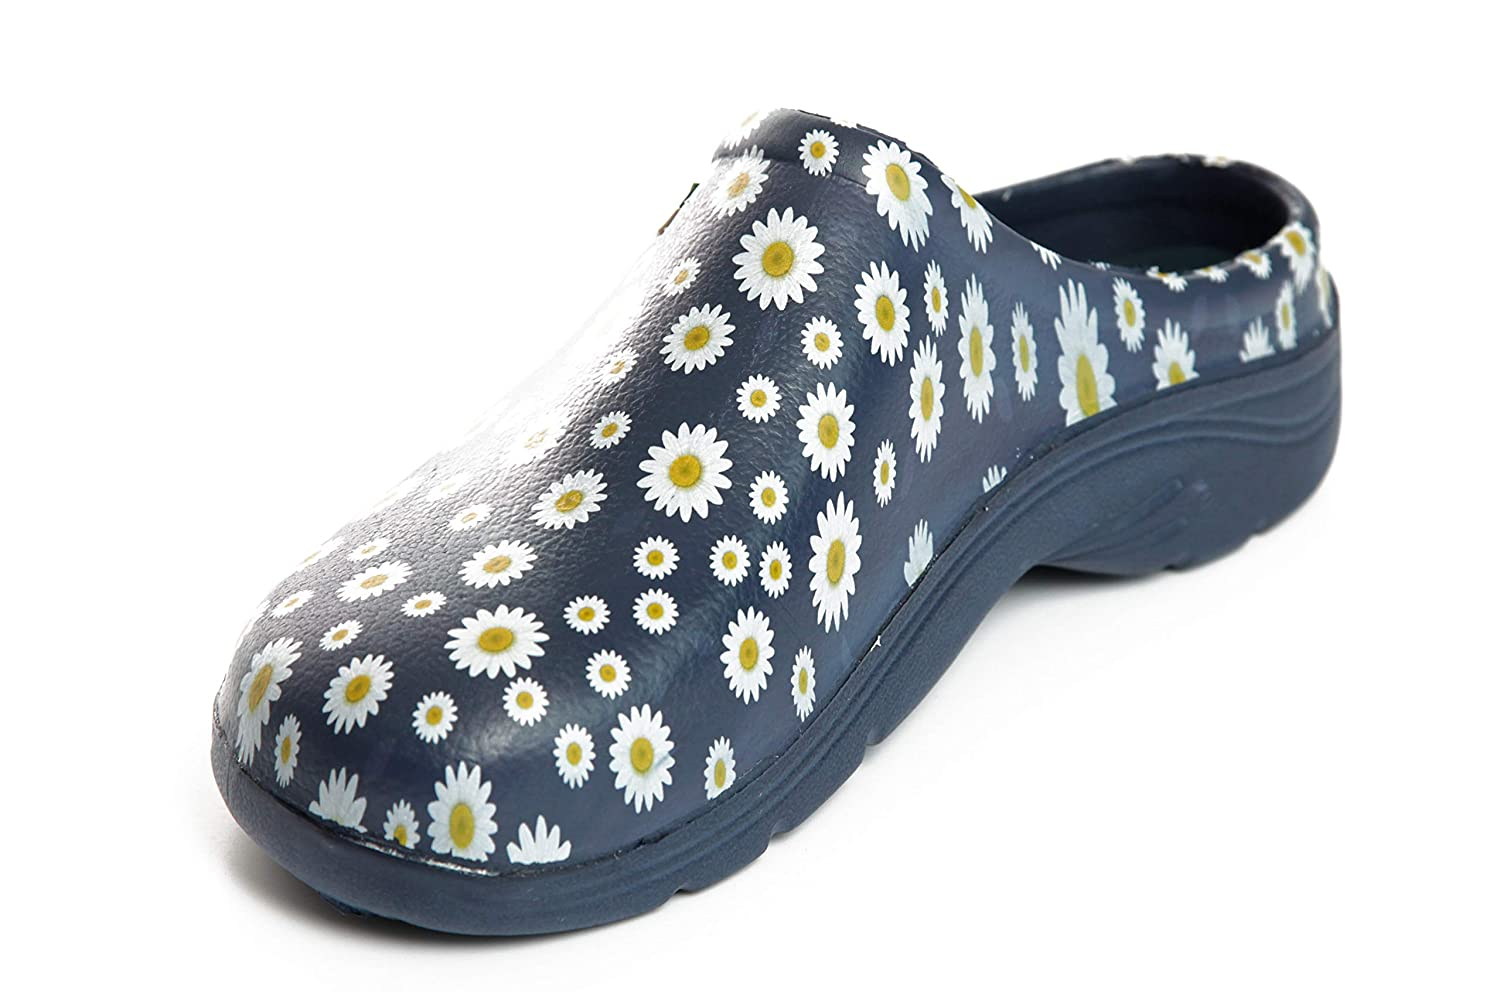 Mens//Womens Gardening Super Soft Clogs//Cloggies Lightweight with Cushioned Insole